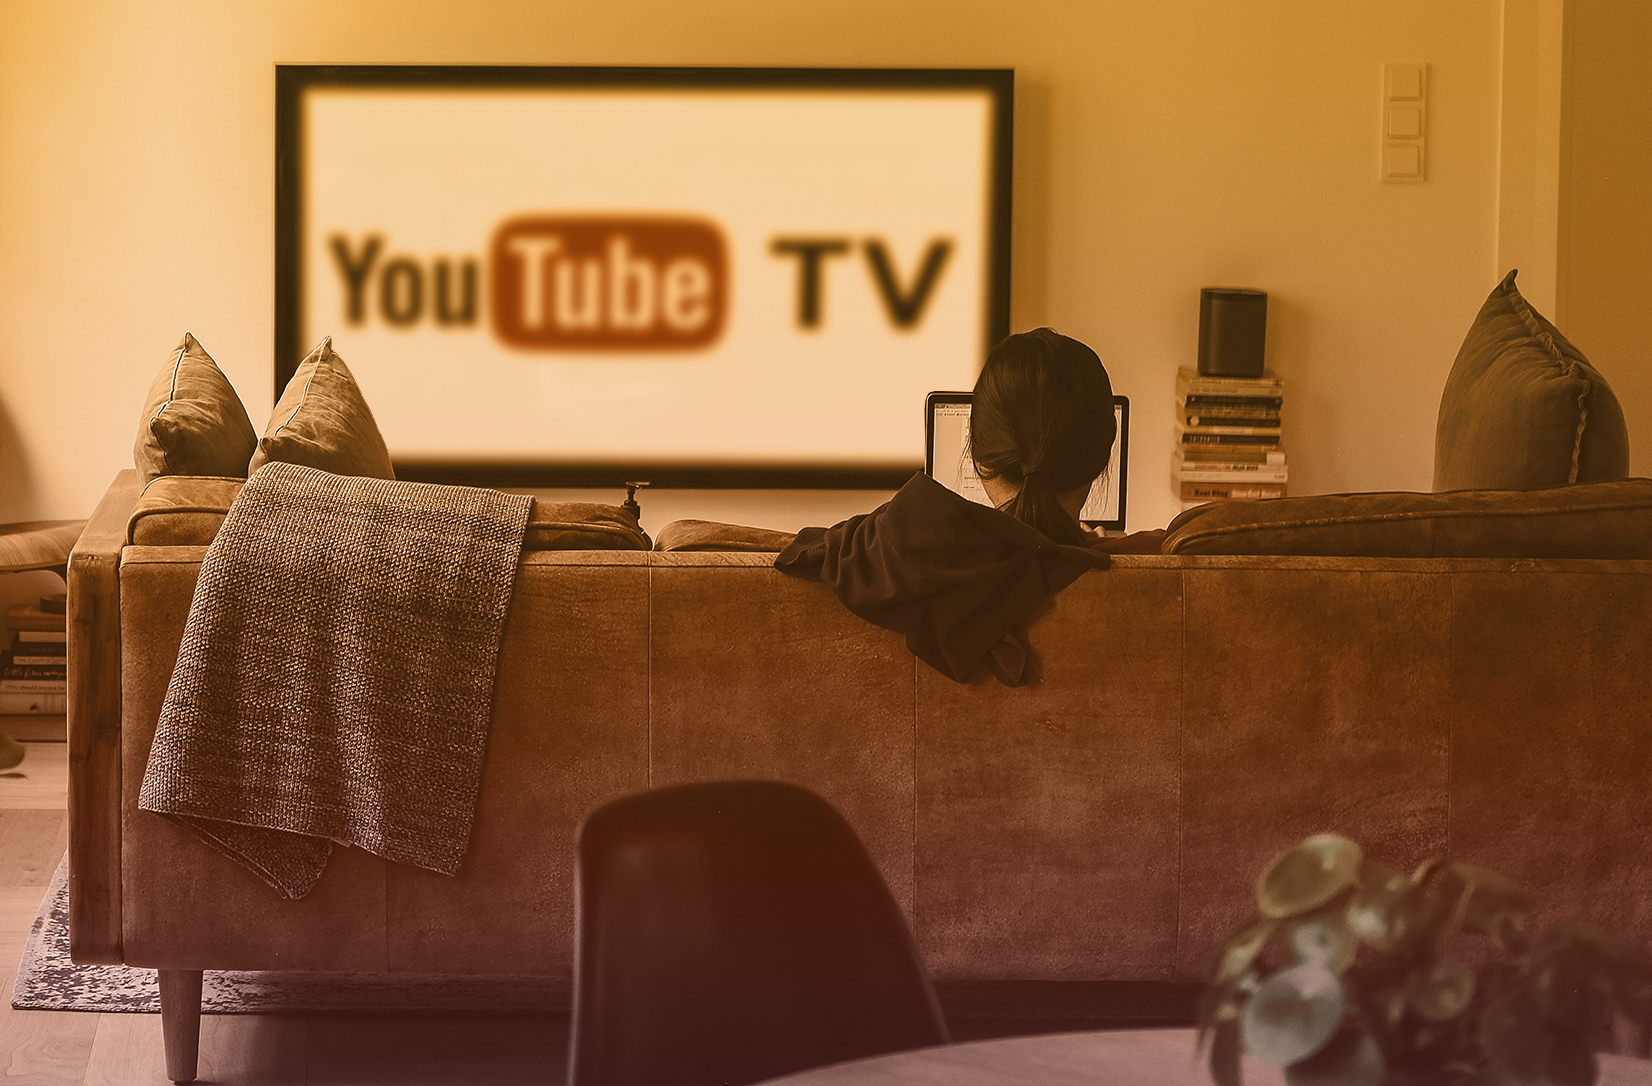 YouTubeTV Now Offers Local Channels In Mid-MO